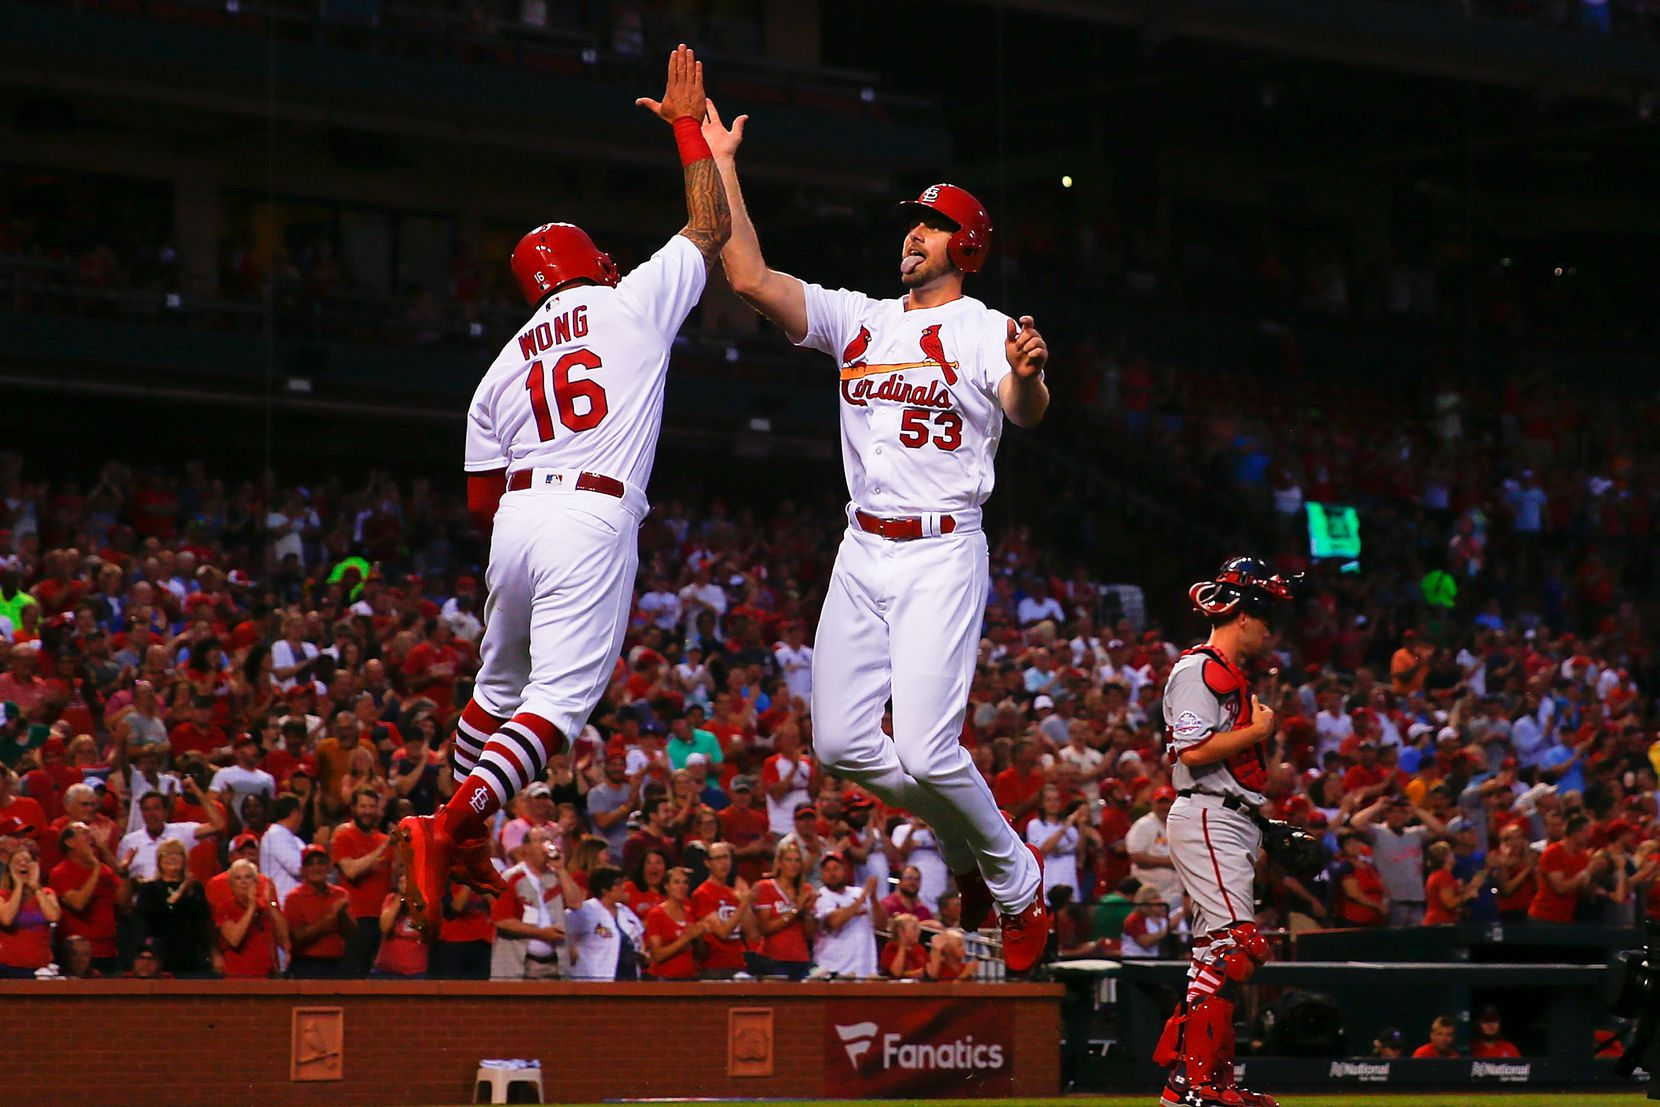 John Gant (right) of the St. Louis Cardinals celebrates after hitting a two-run home run against the Washington Nationals in the second inning at Busch Stadium on Tuesday, Aug. 14, in St. Louis, Mo.